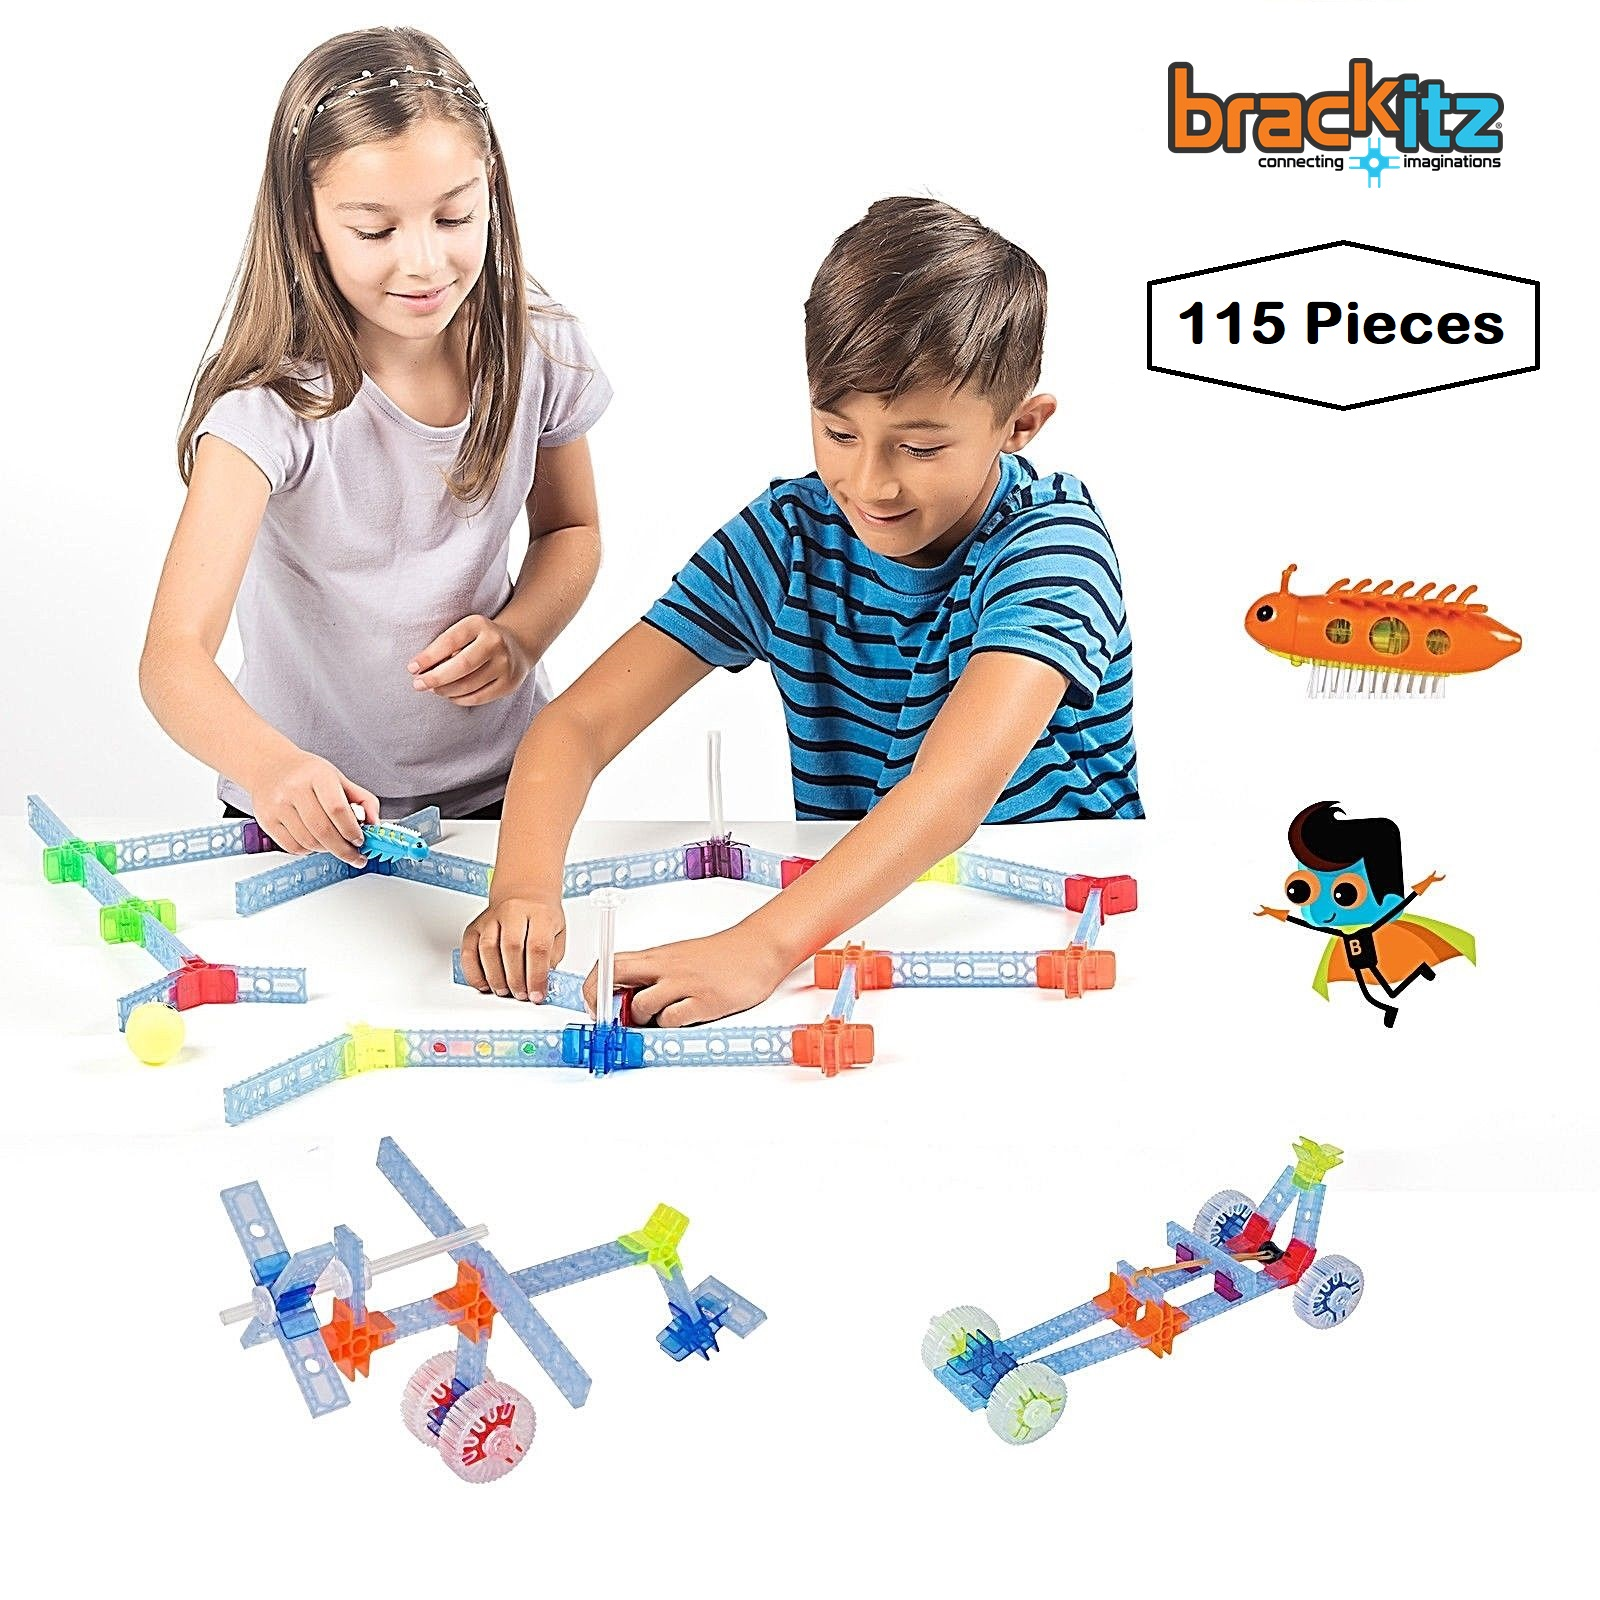 Brackitz Explorer STEM Building Toy for Boys & Girls Ages 4+